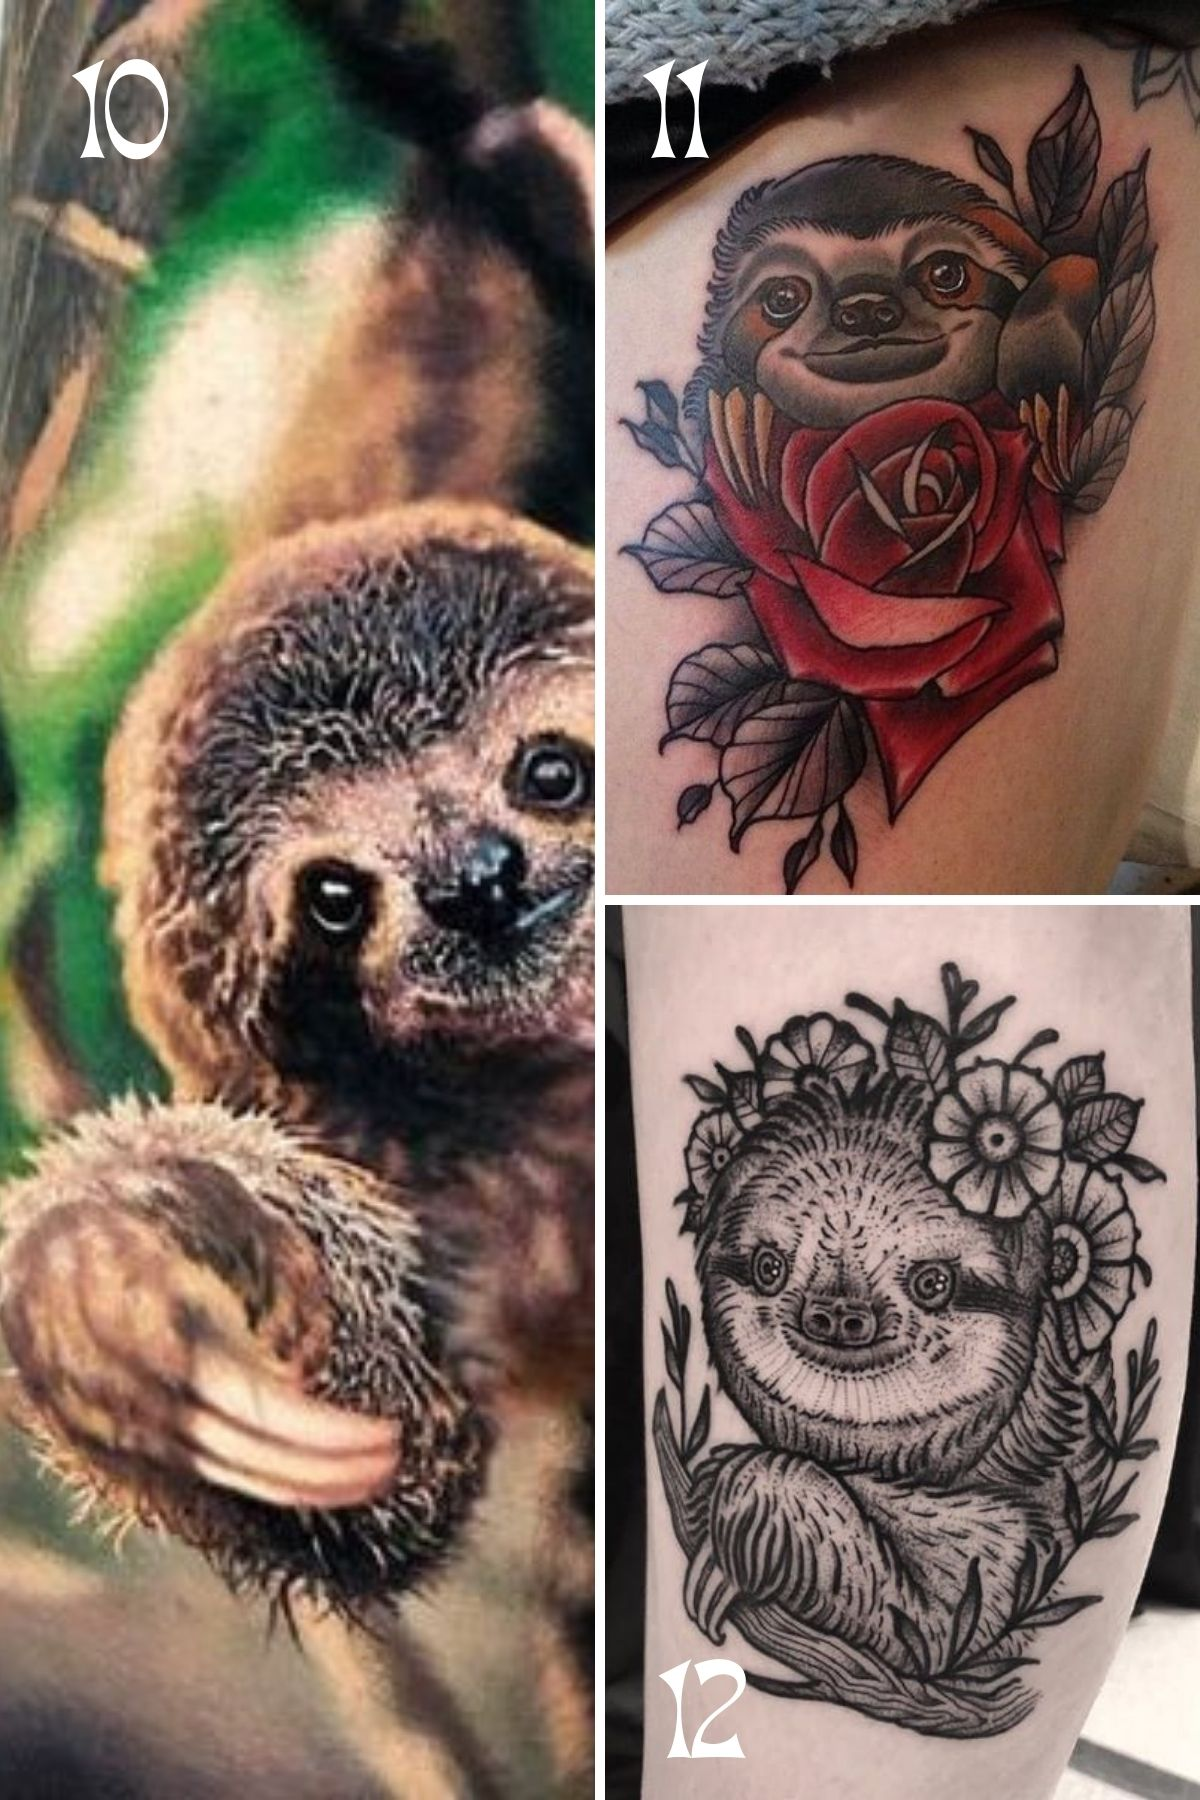 Detailed Sloth Designs